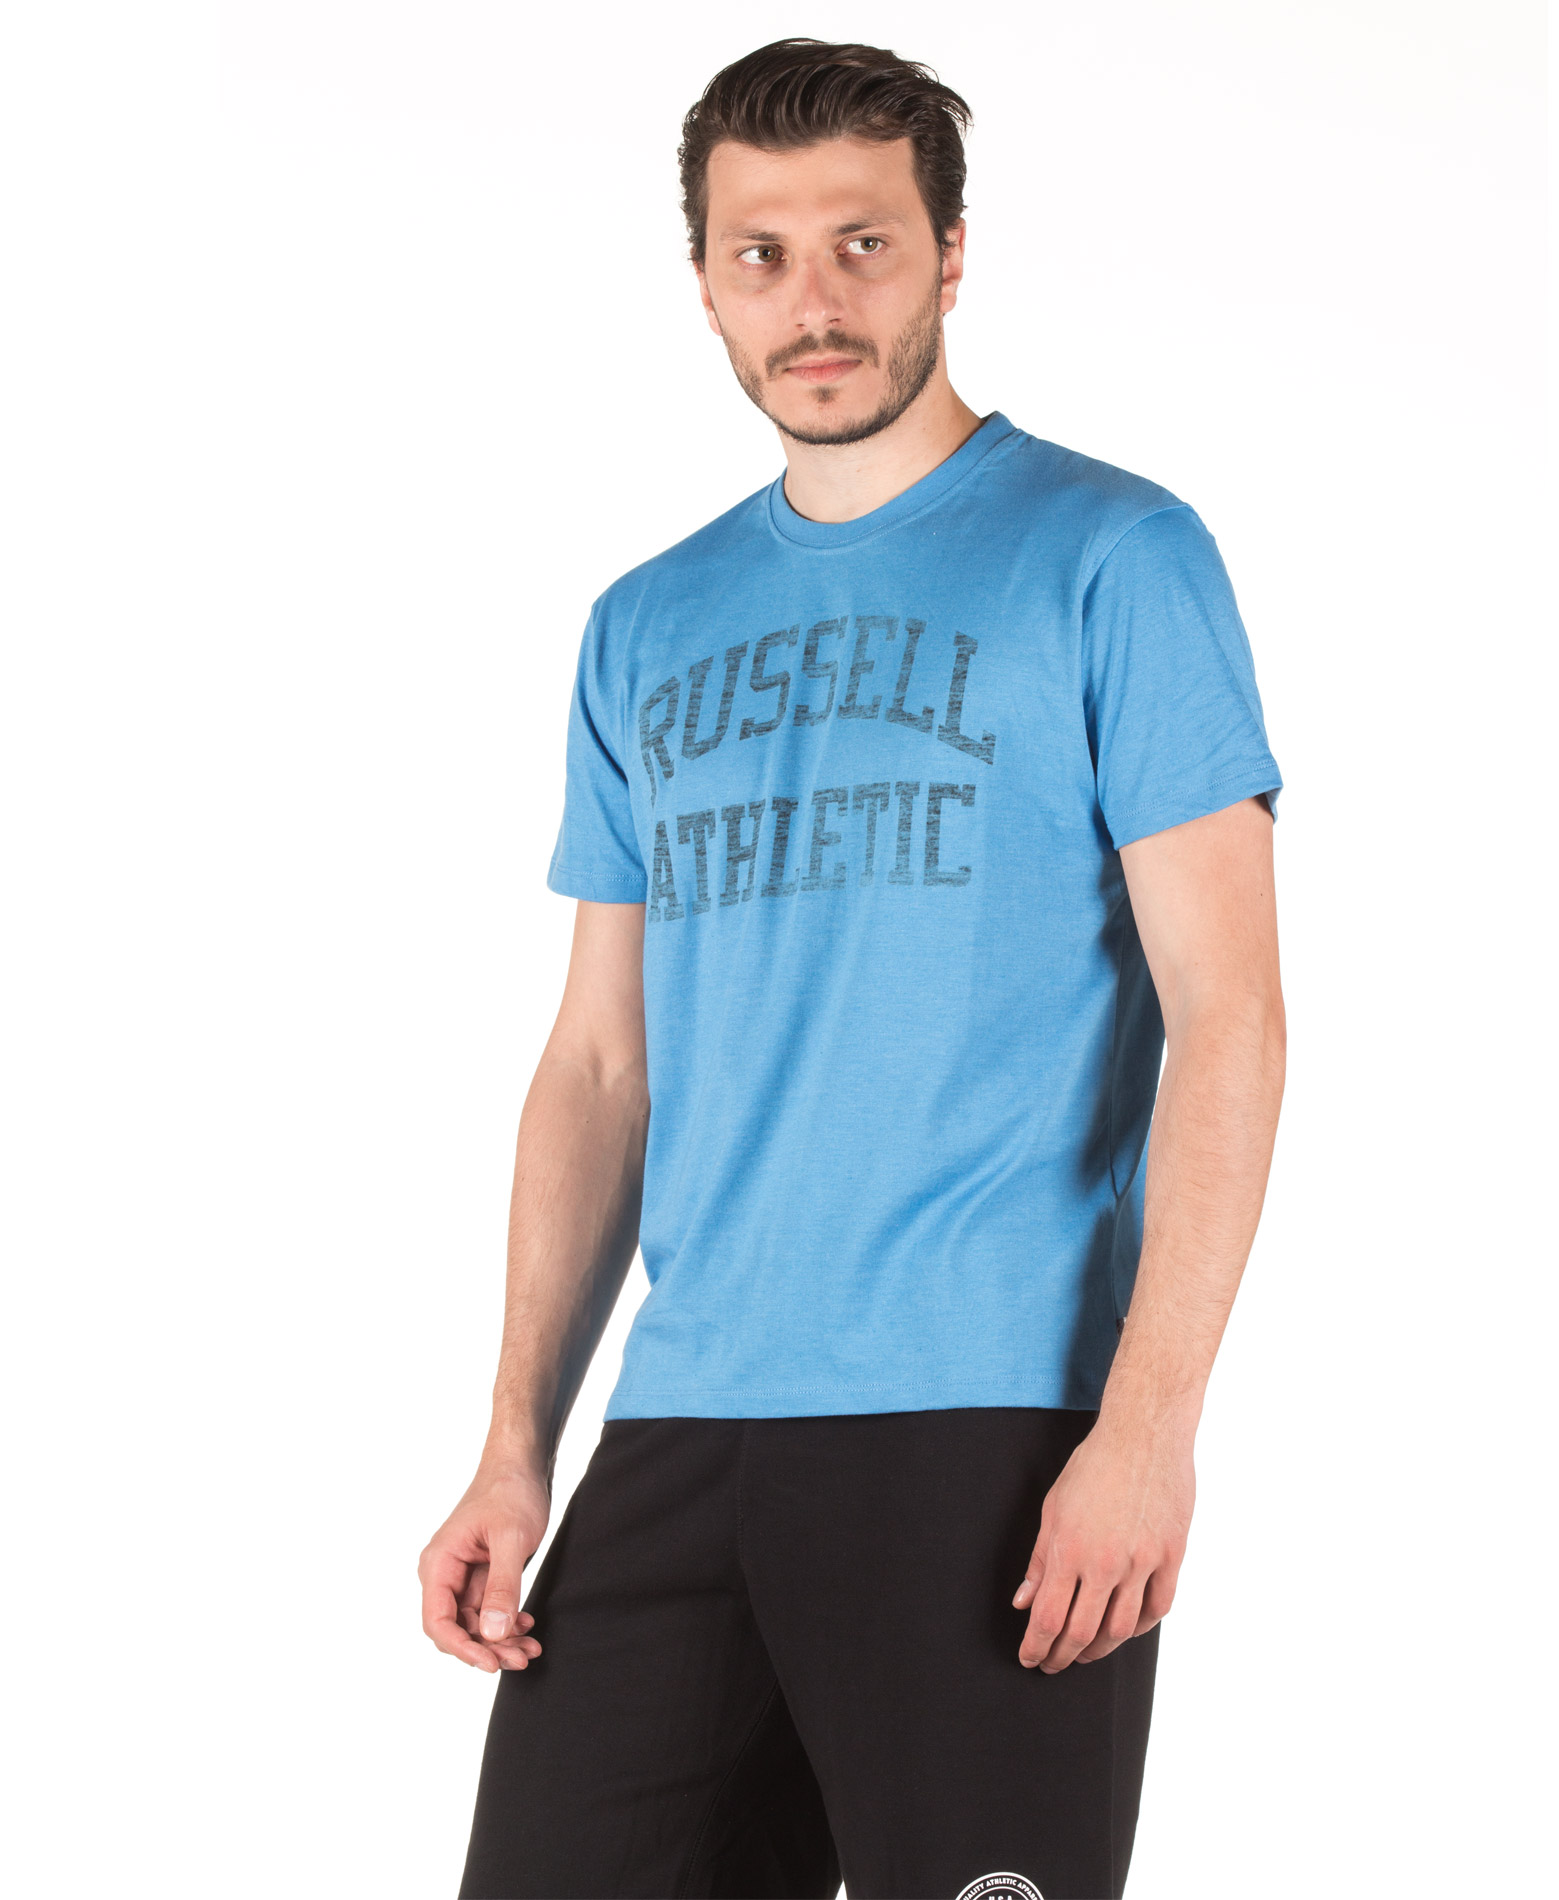 Russell Athletic A8-003-1-120 Σιελ